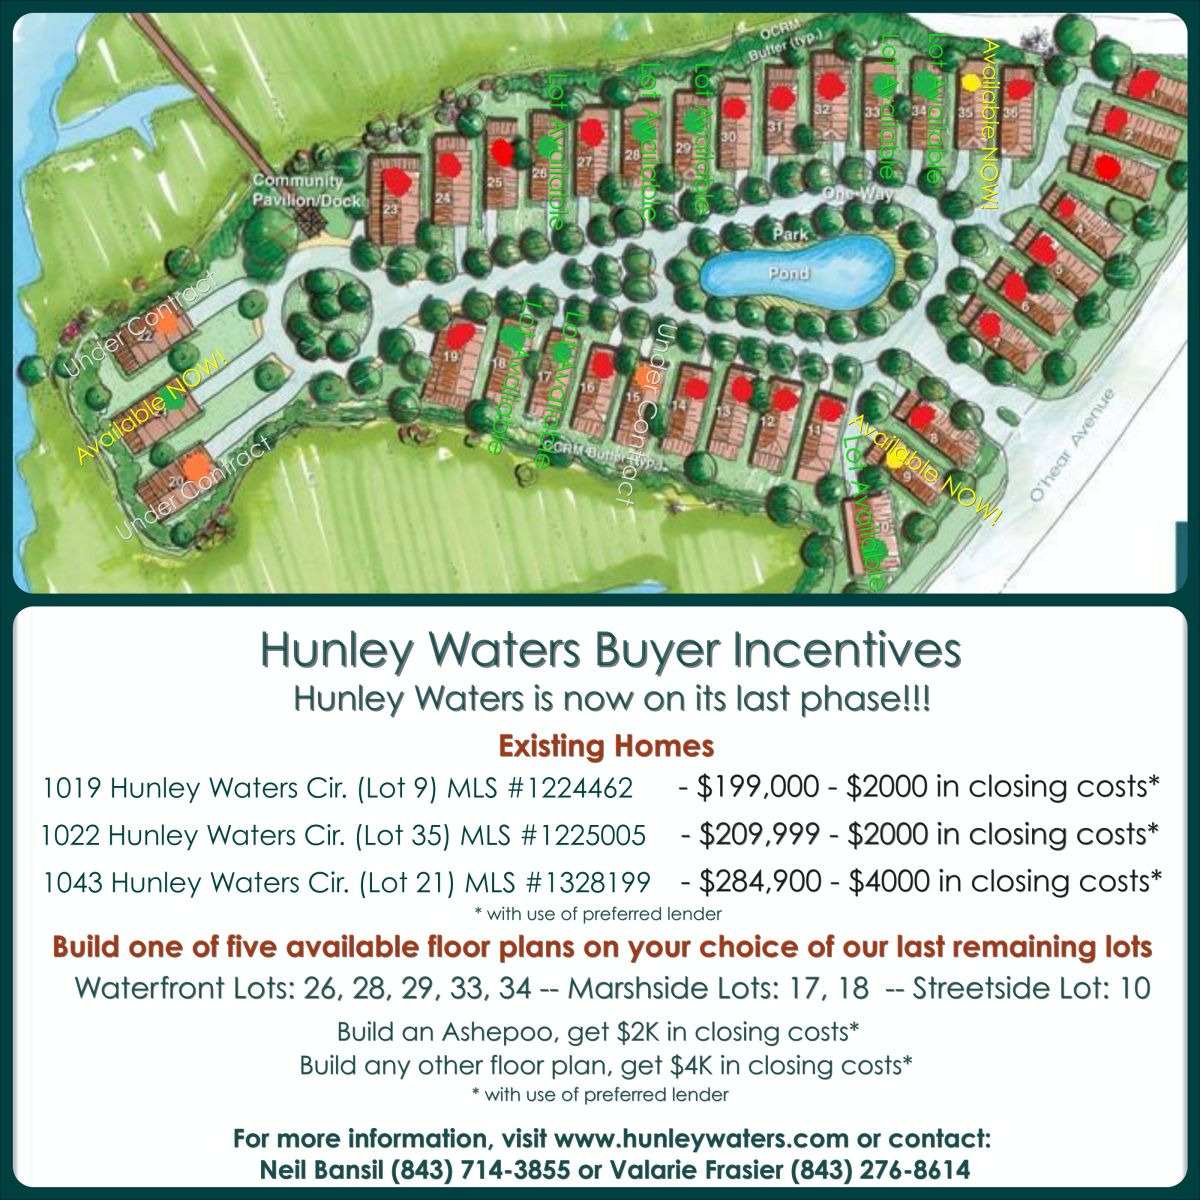 Hunley Waters Last Phase Incentives